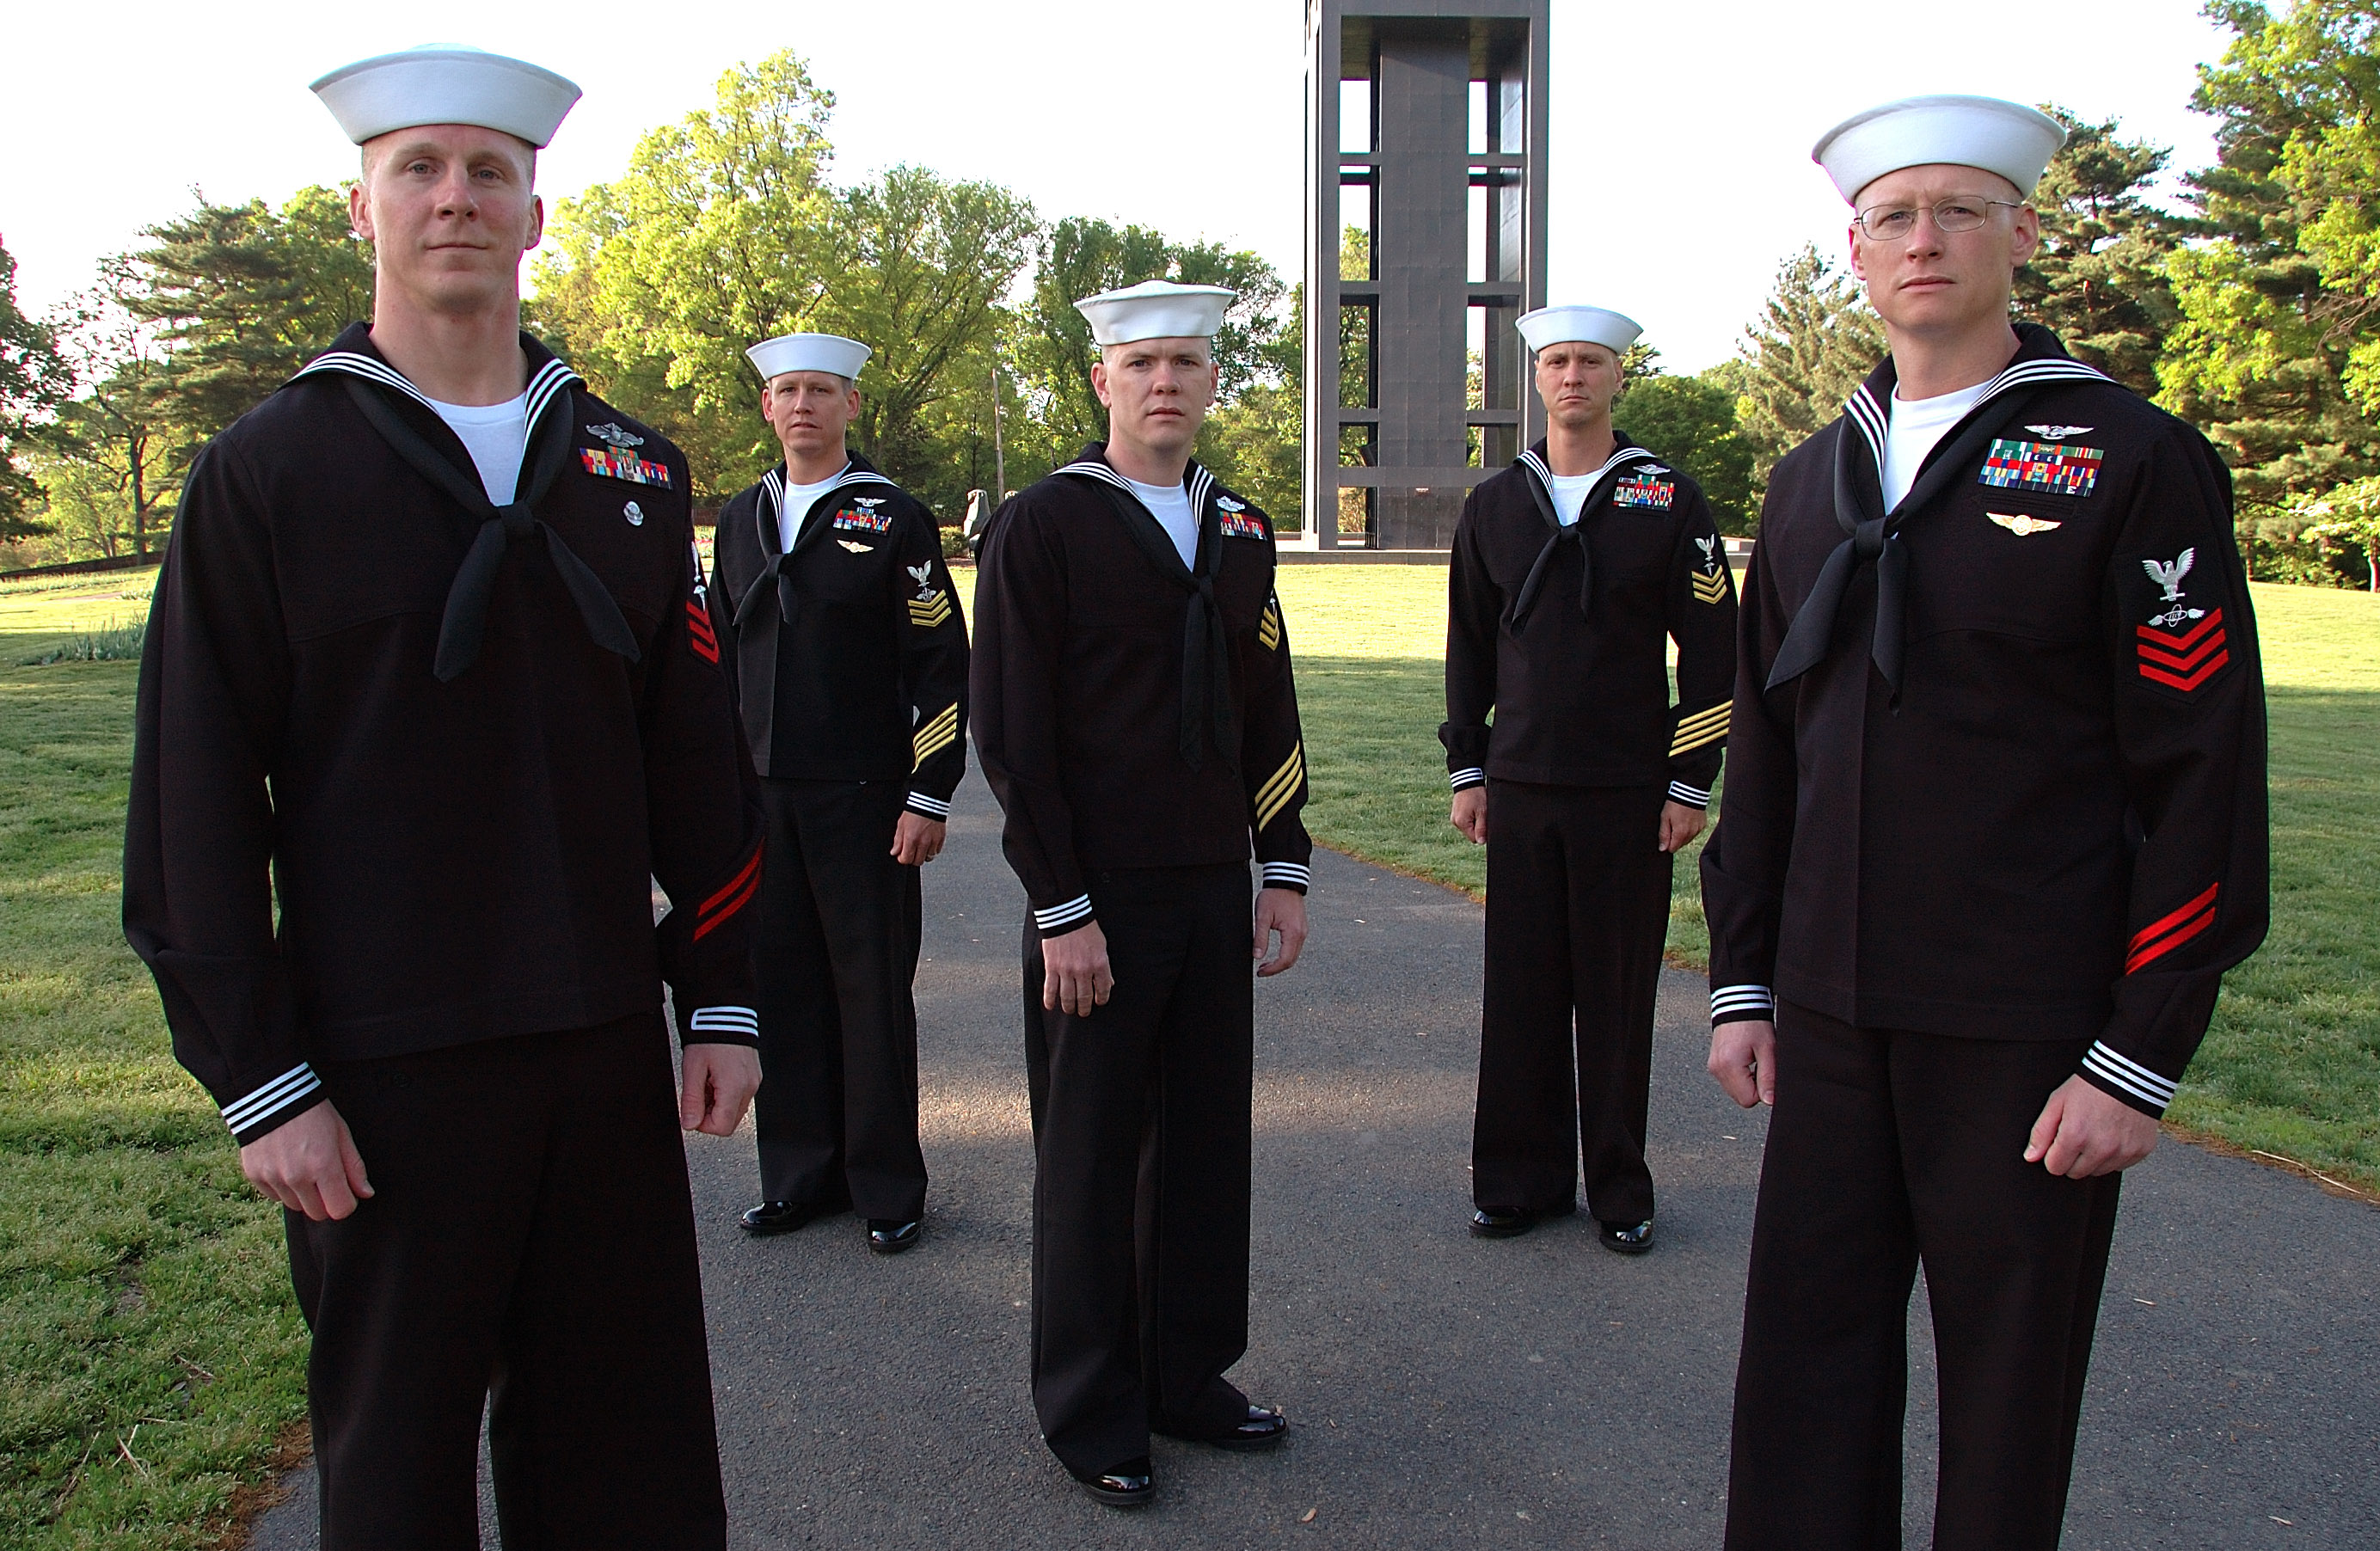 List of United States Navy enlisted rates | Military Wiki ...